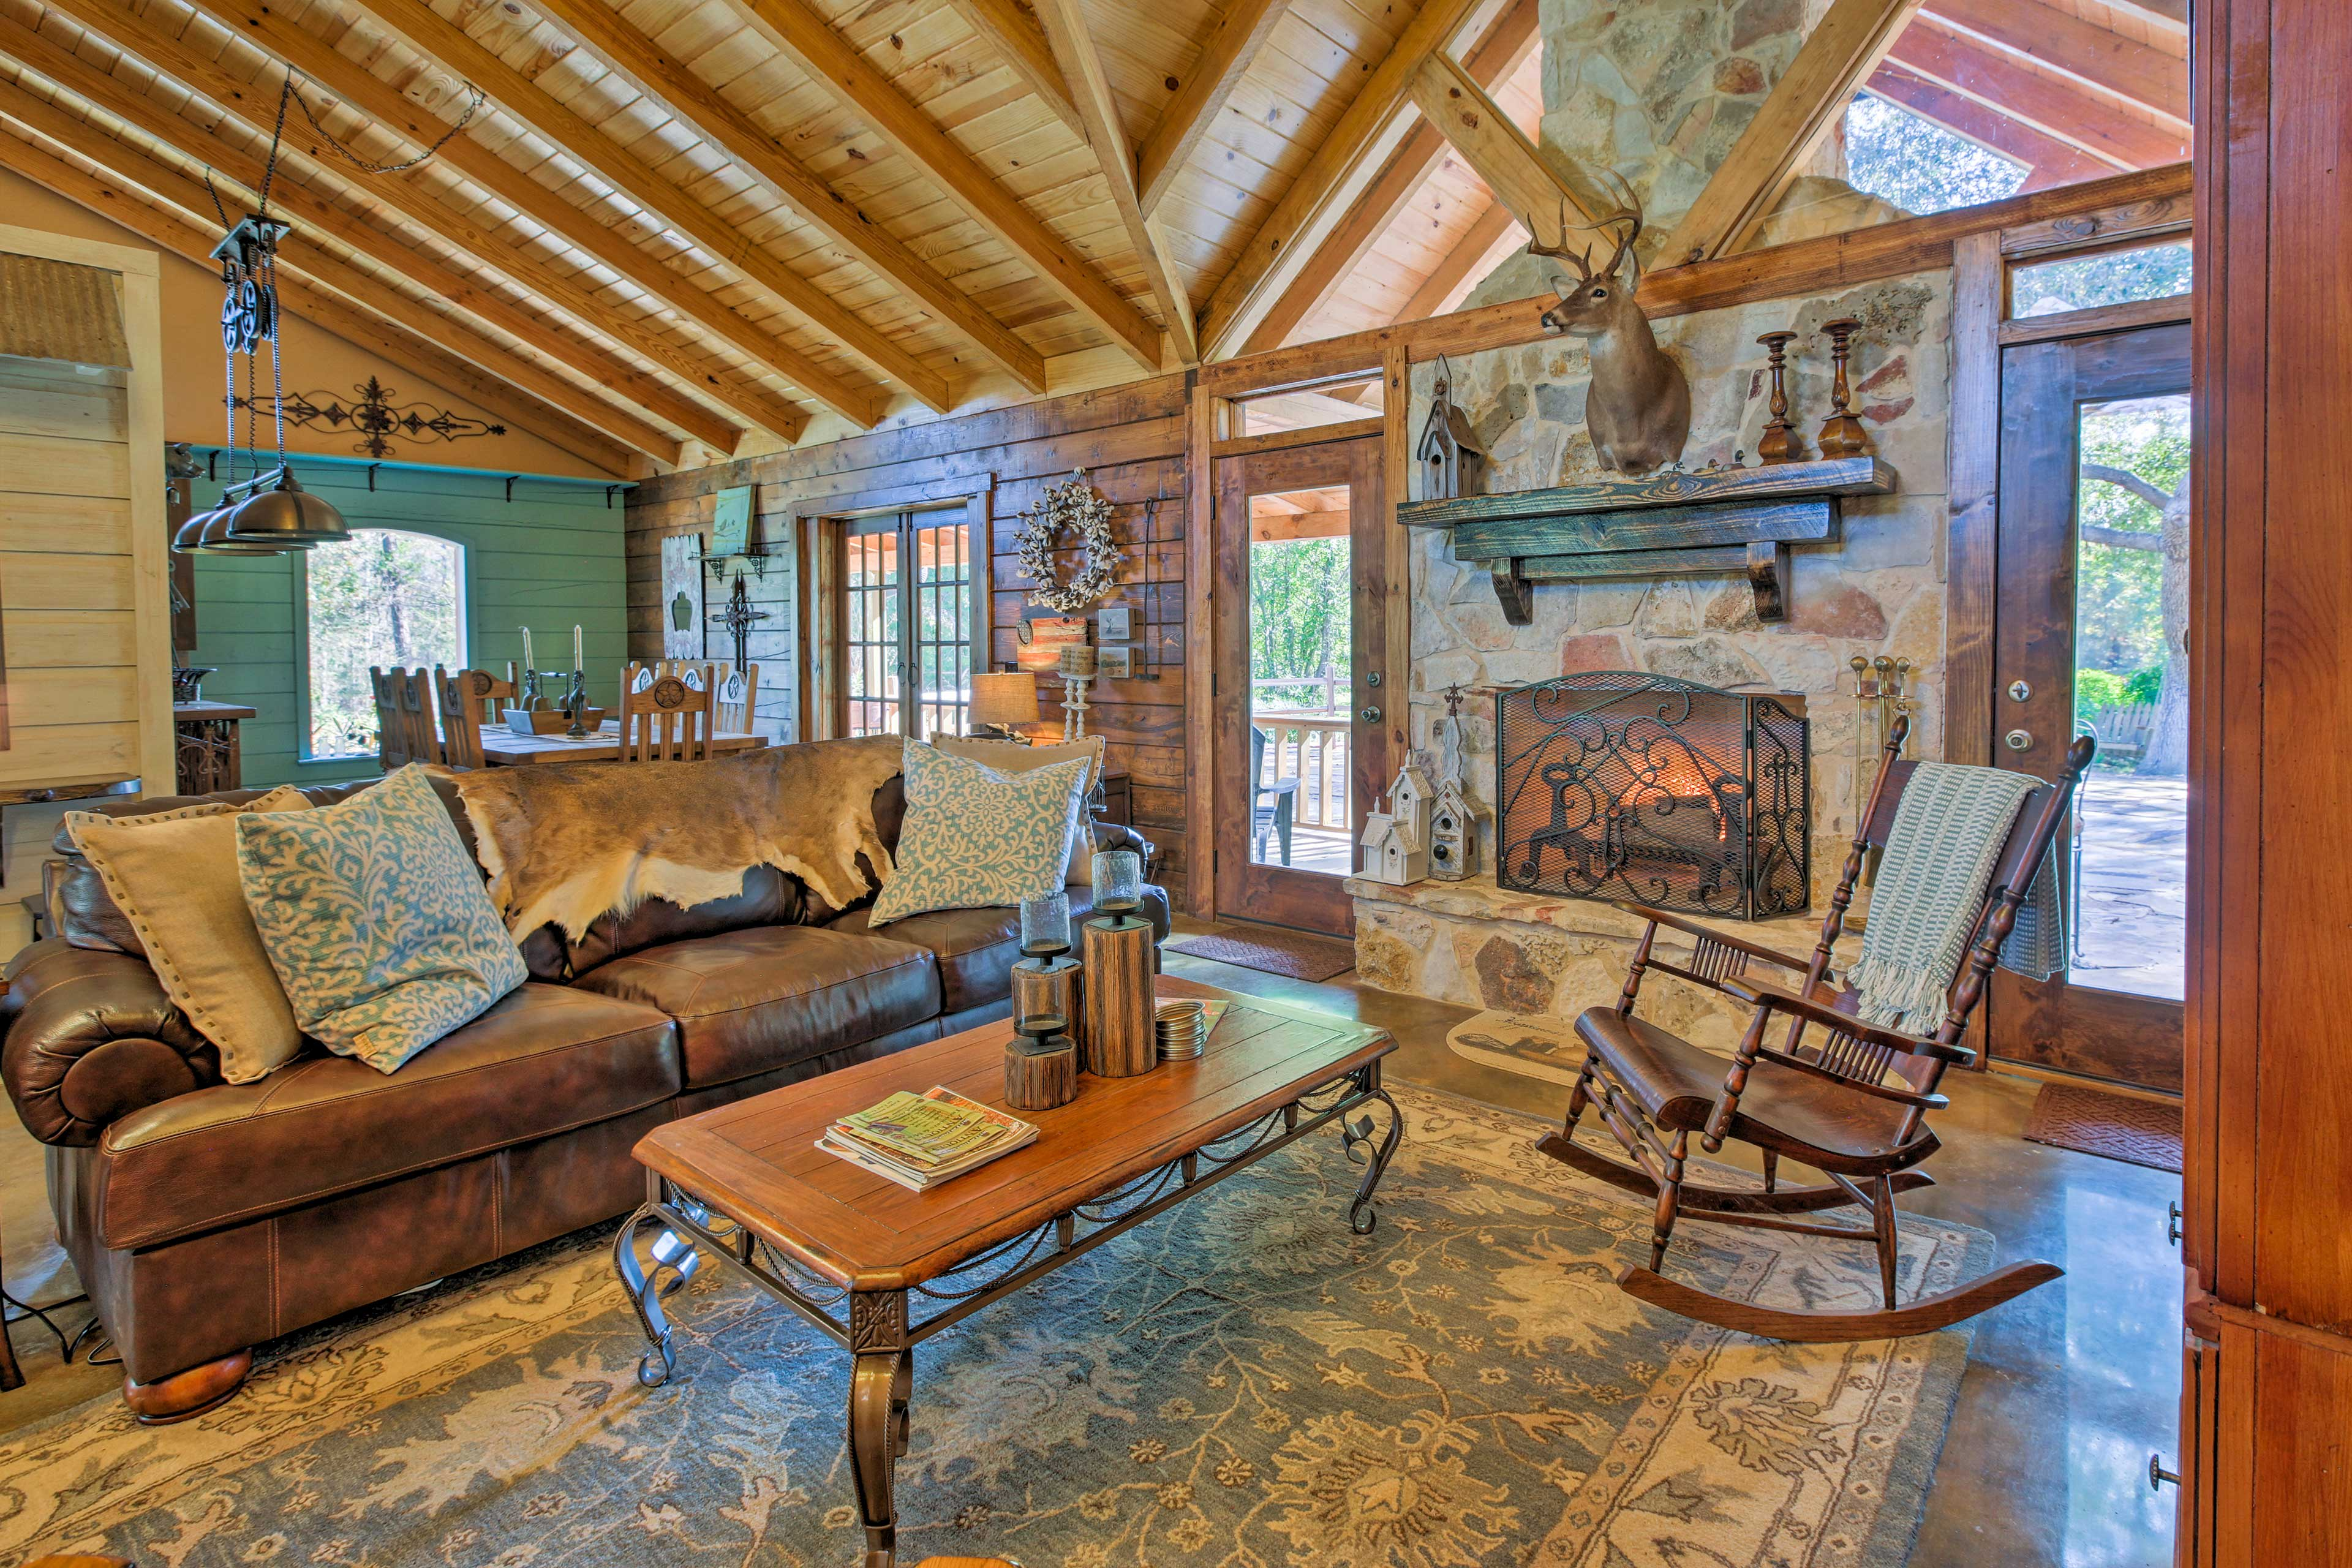 Make yourself at home on the plush sofas in the earthy living room.